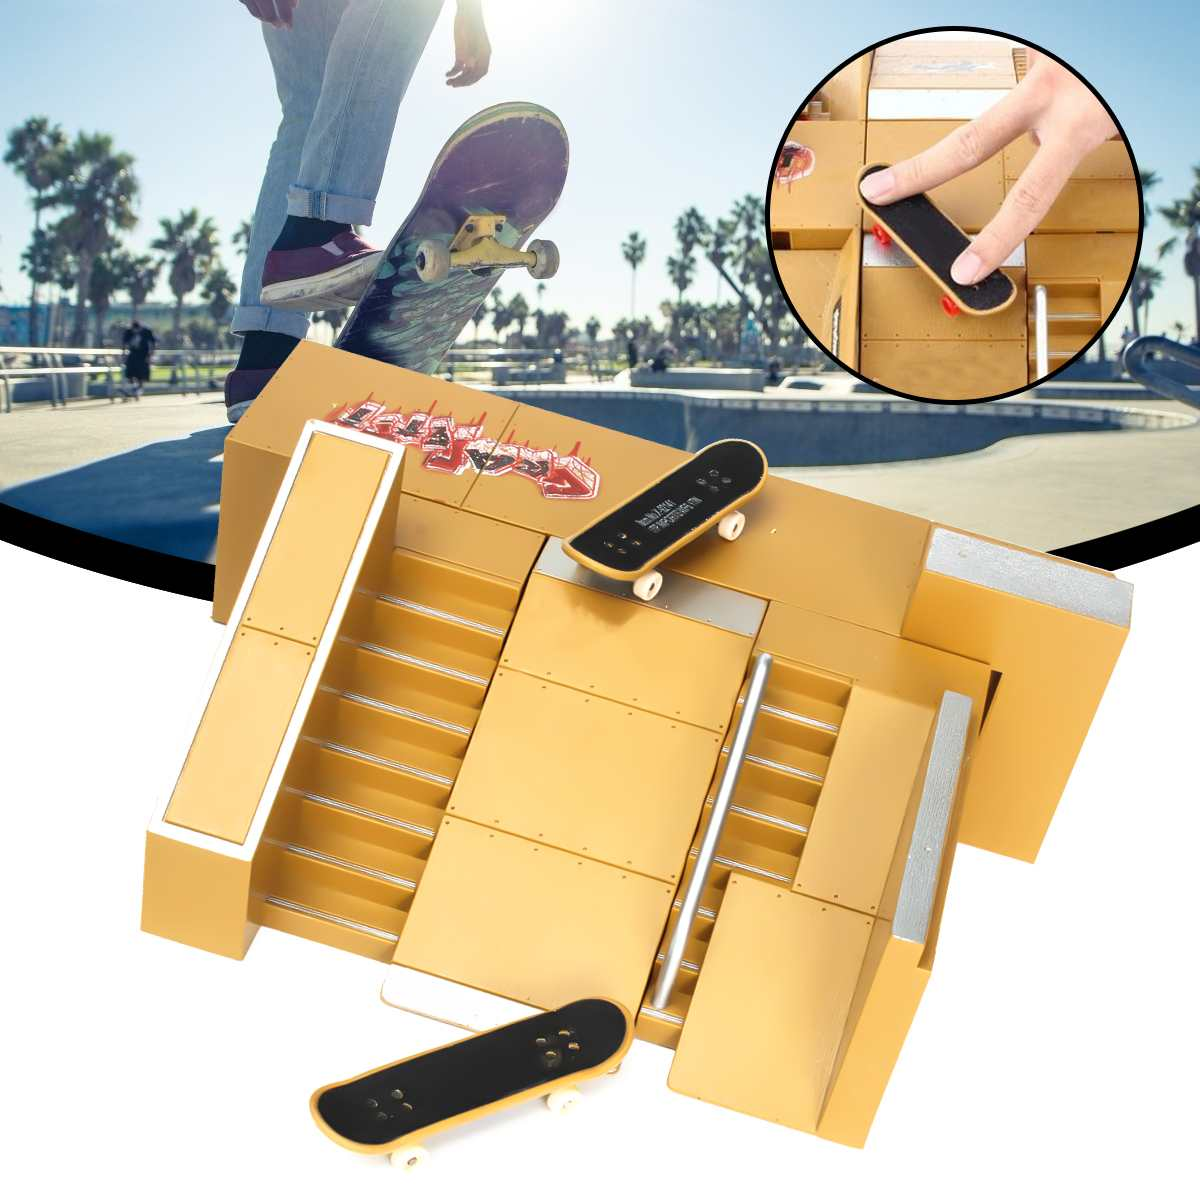 Finger Board Park Skate Park Ramp Kits Skateboard Tricks Fingers Training Props Games Children Sport Toy Fingerboard Kids Gifts